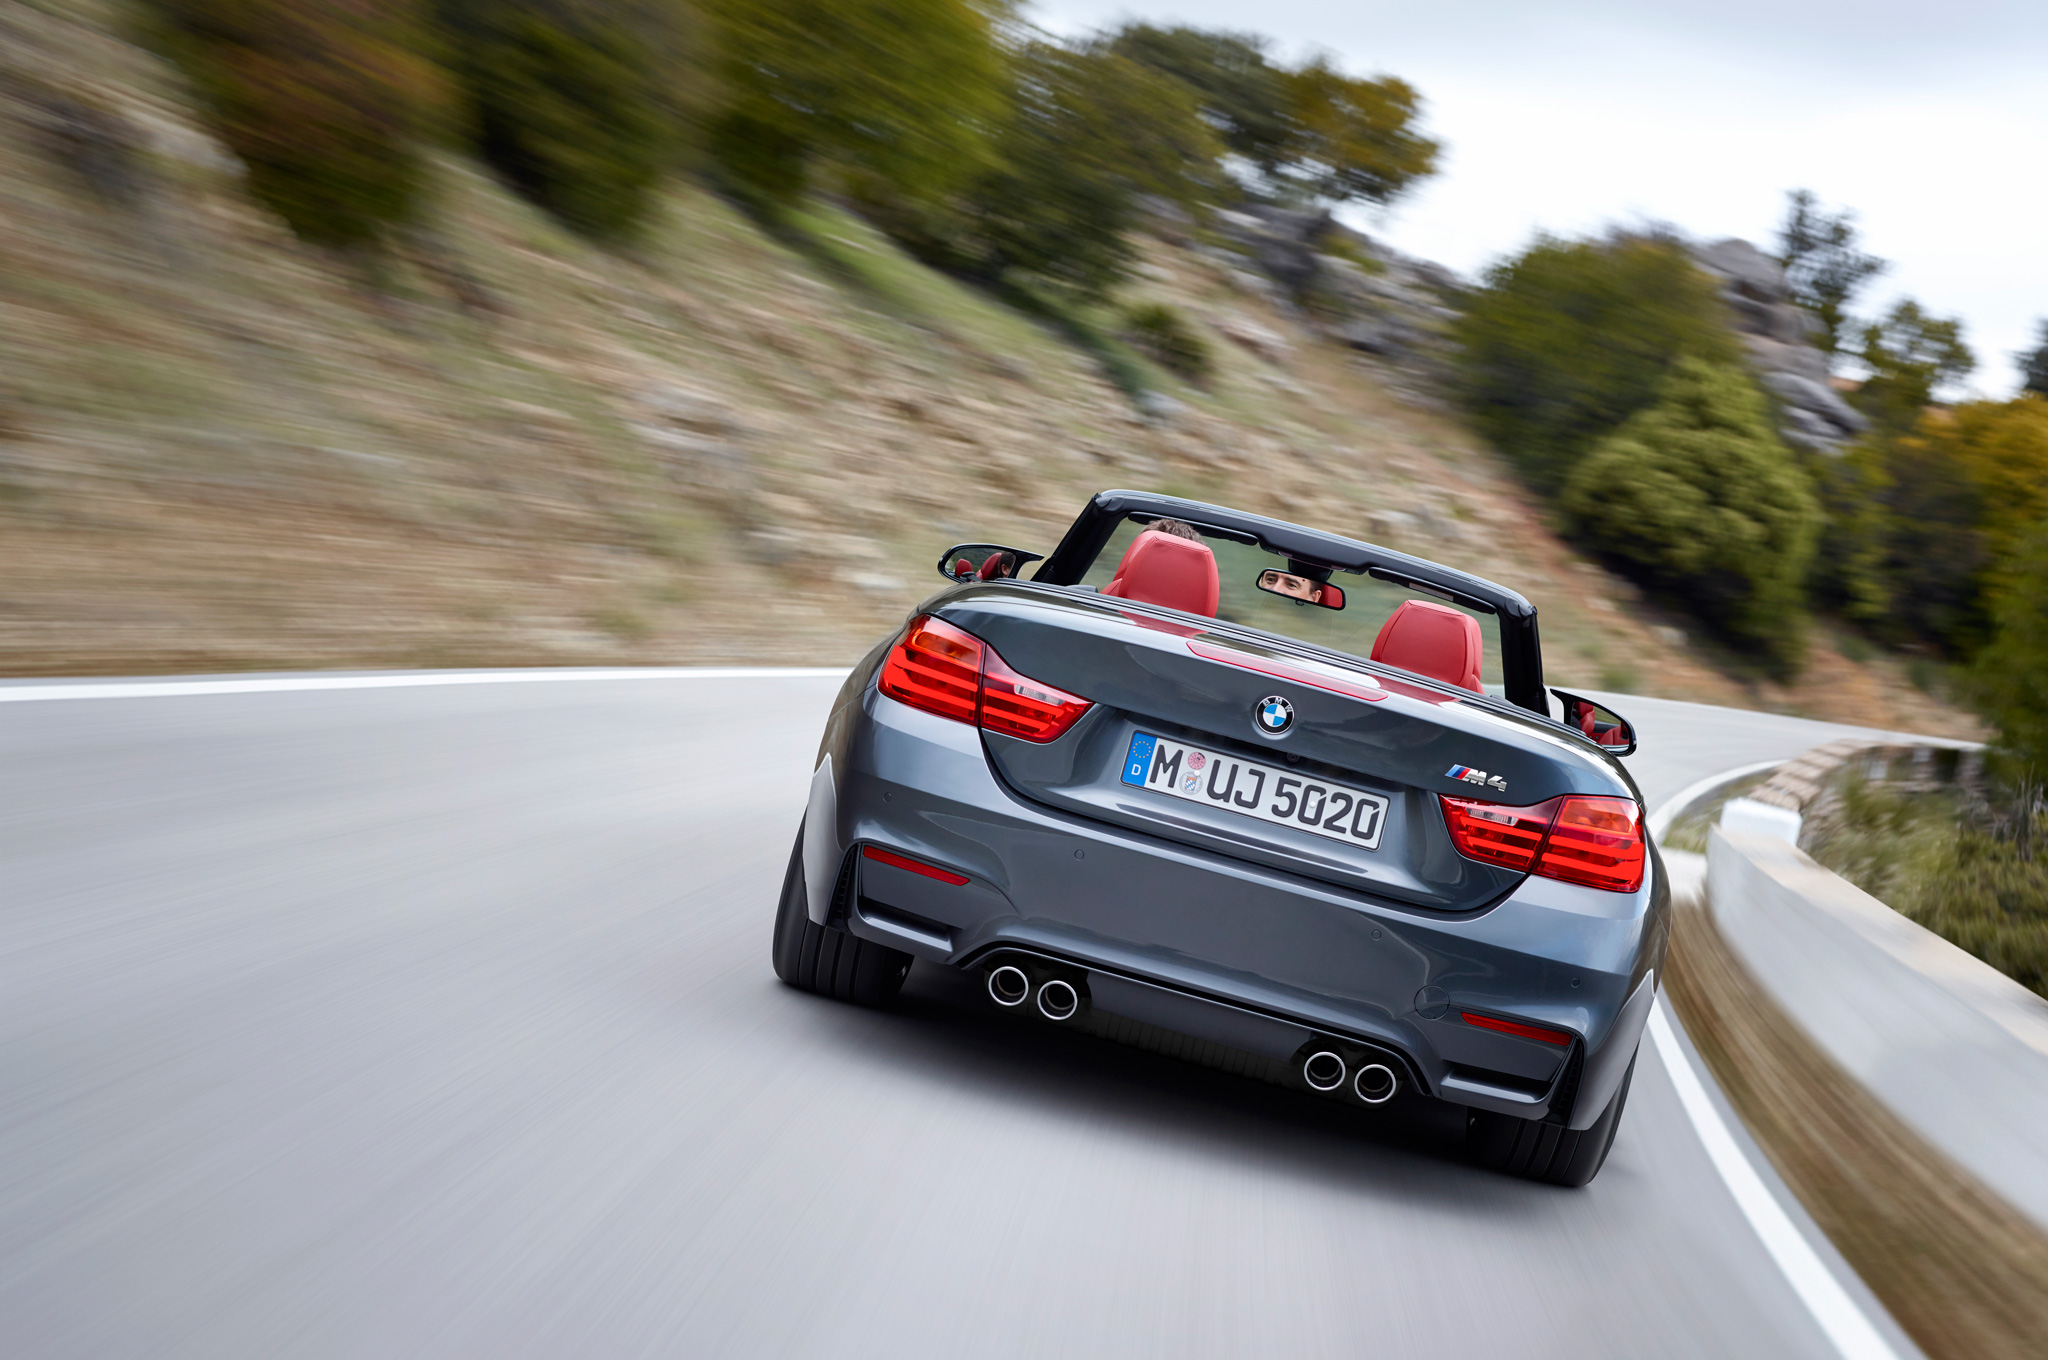 2015 Bmw M4 Convertible Rear View Performance (Photo 15 of 50)